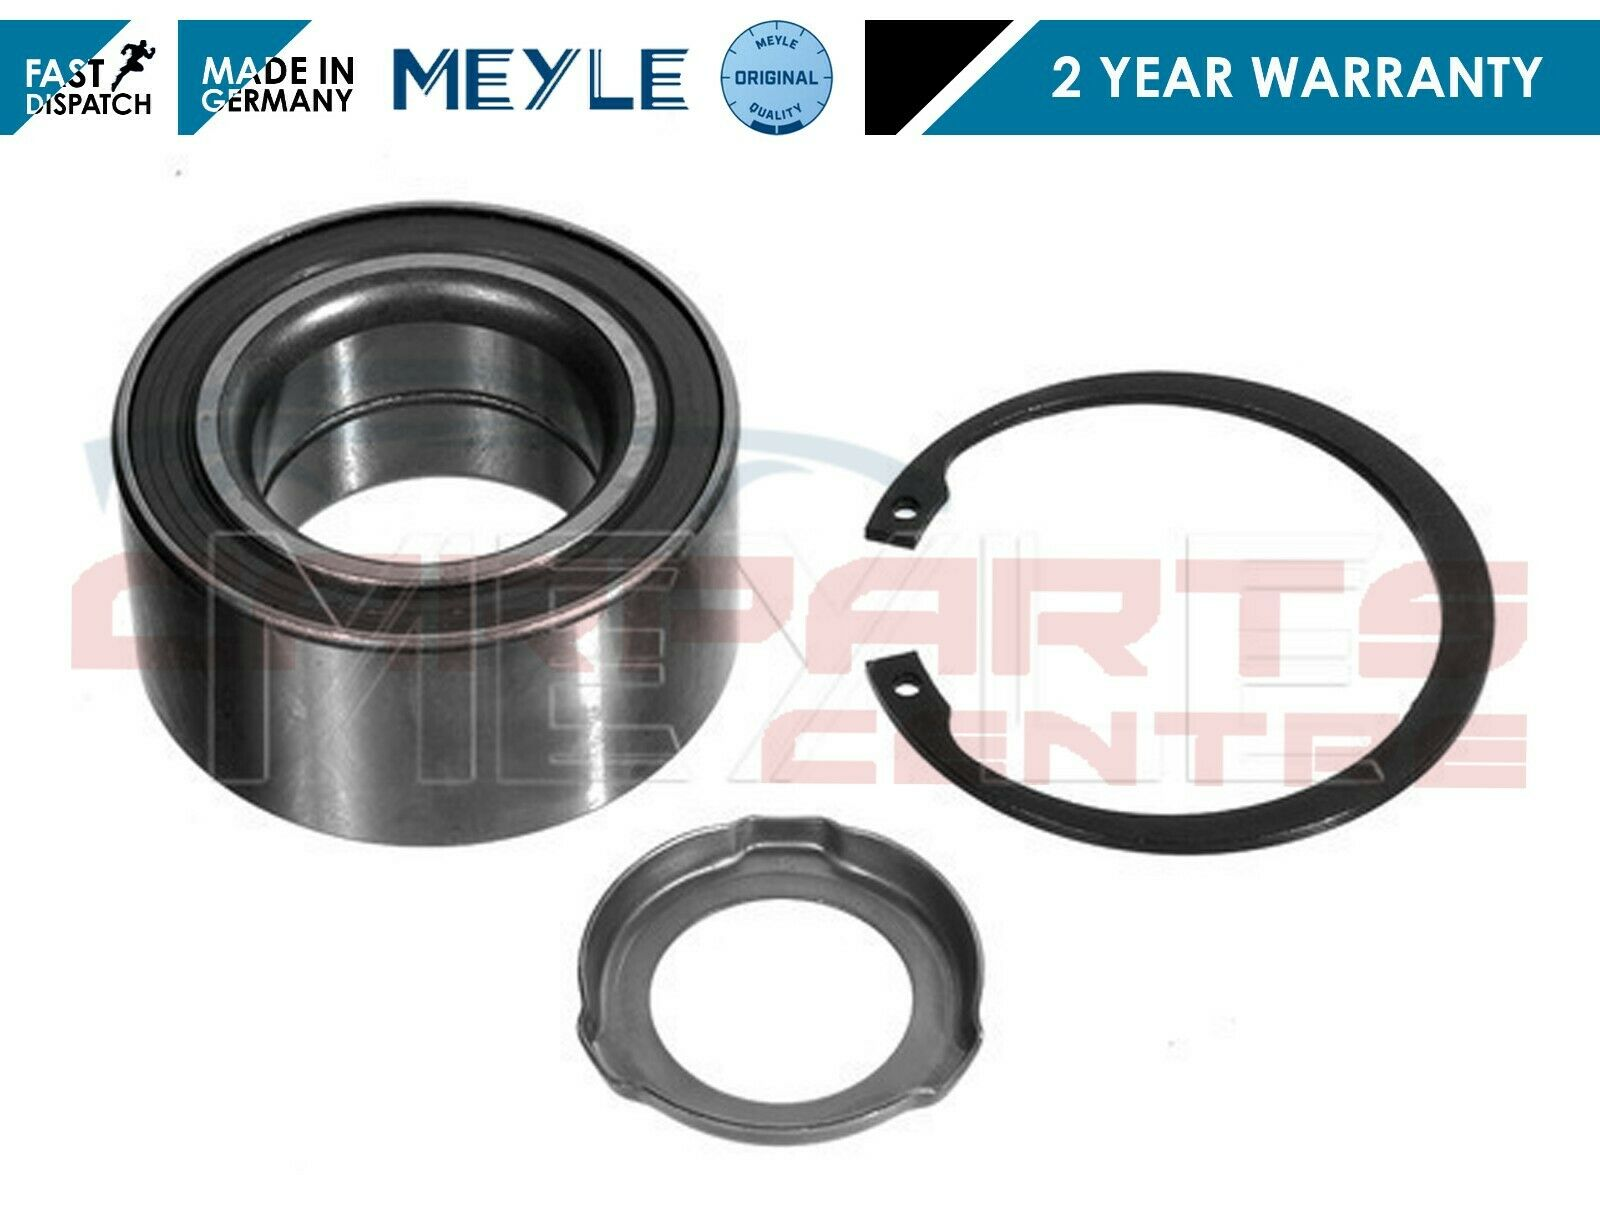 Wheel Bearing Kit fits BMW 330 E46 Front 3.0 3.0D 99 to 07 With ABS FAG Quality